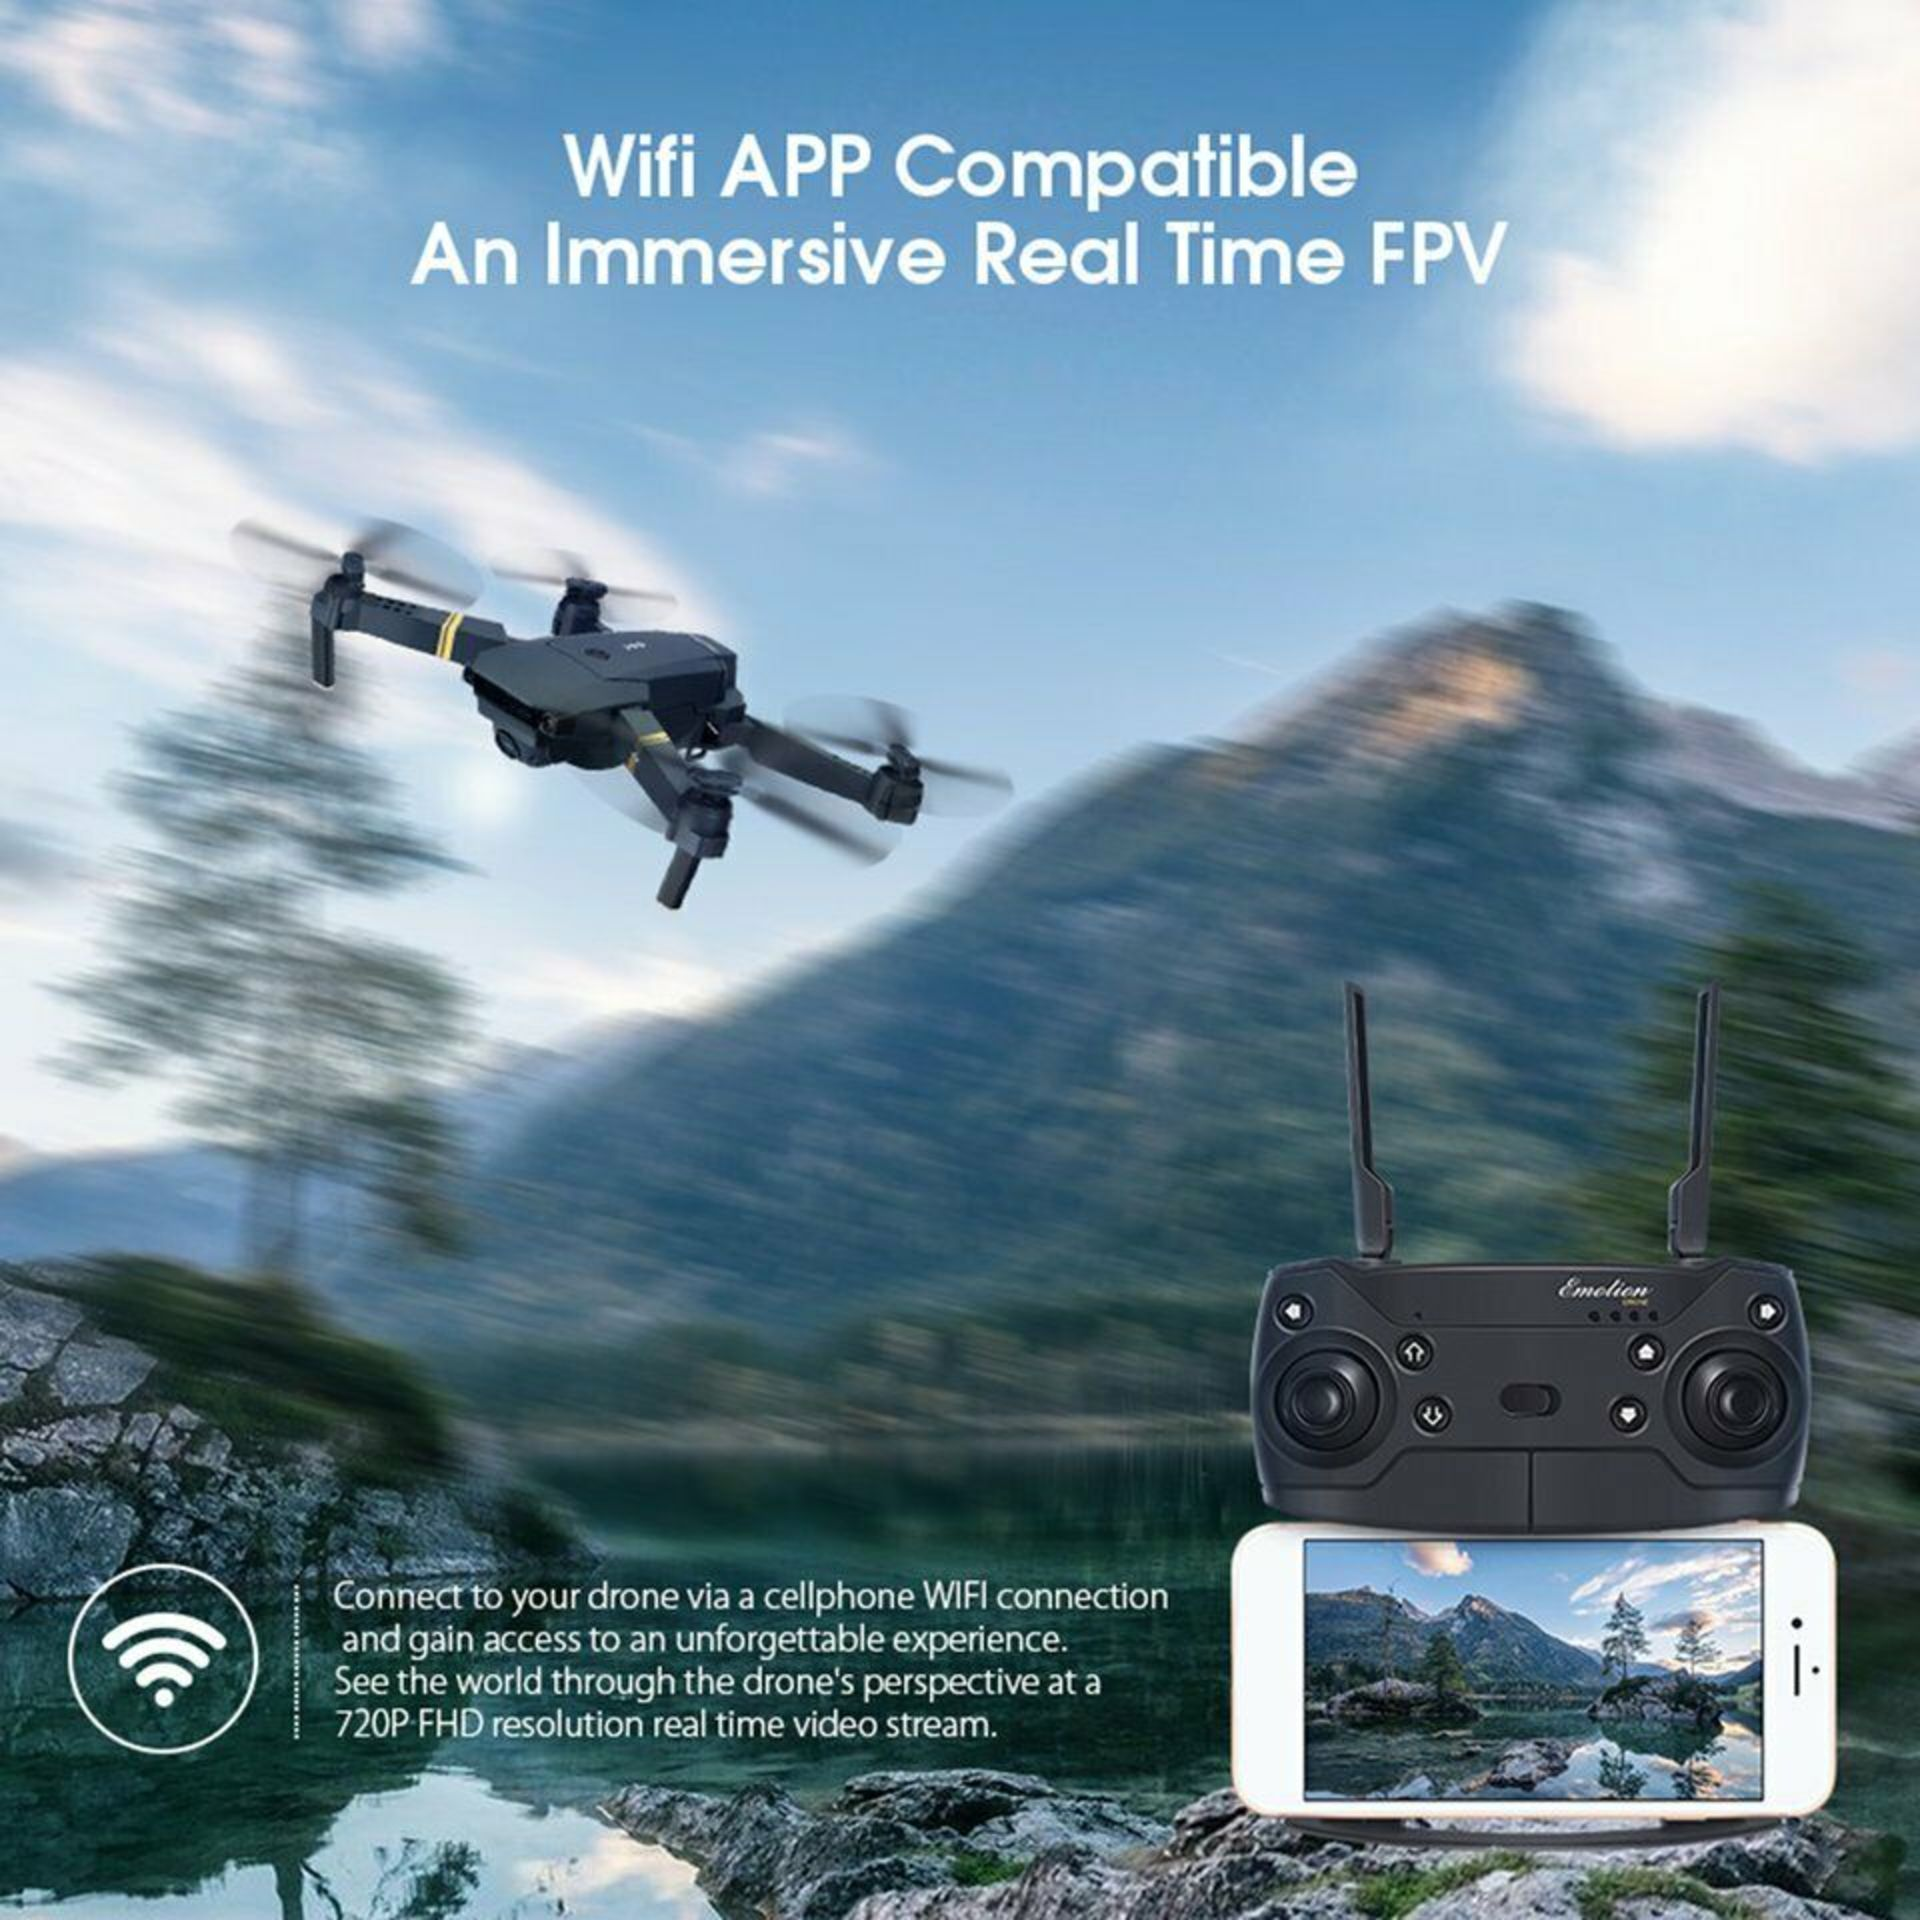 NEW & UNUSED DRONE X PRO WIFI FPV 1080P HD CAMERA FOLDABLE RC QUADCOPTER + BAG *PLUS VAT* - Image 12 of 12